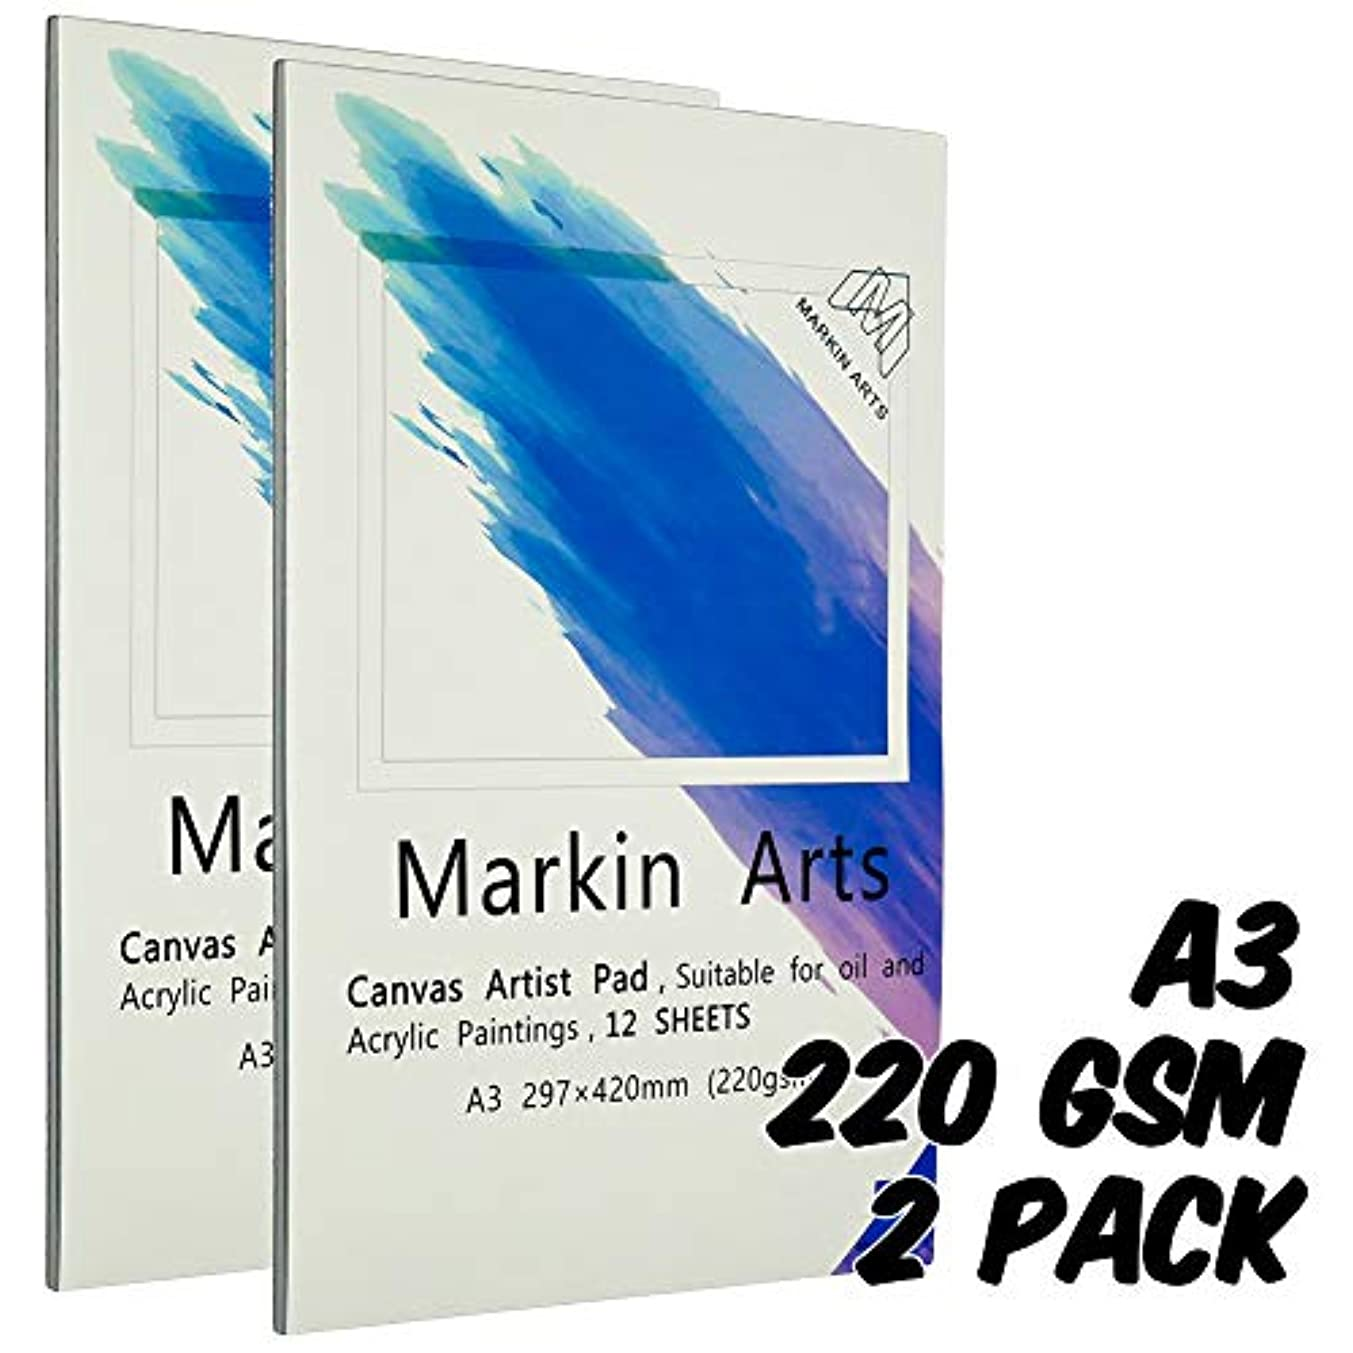 Markin Arts Sketch Book 149lbs/220gsm A3 Professional Heavy-Weight Textured Acid-Free Neutral PH Watercolor Oil Pencil Ink Painting Coloring Drawing Crafting Paper Artist Canvas Pad 12 Sheets 2-Pack